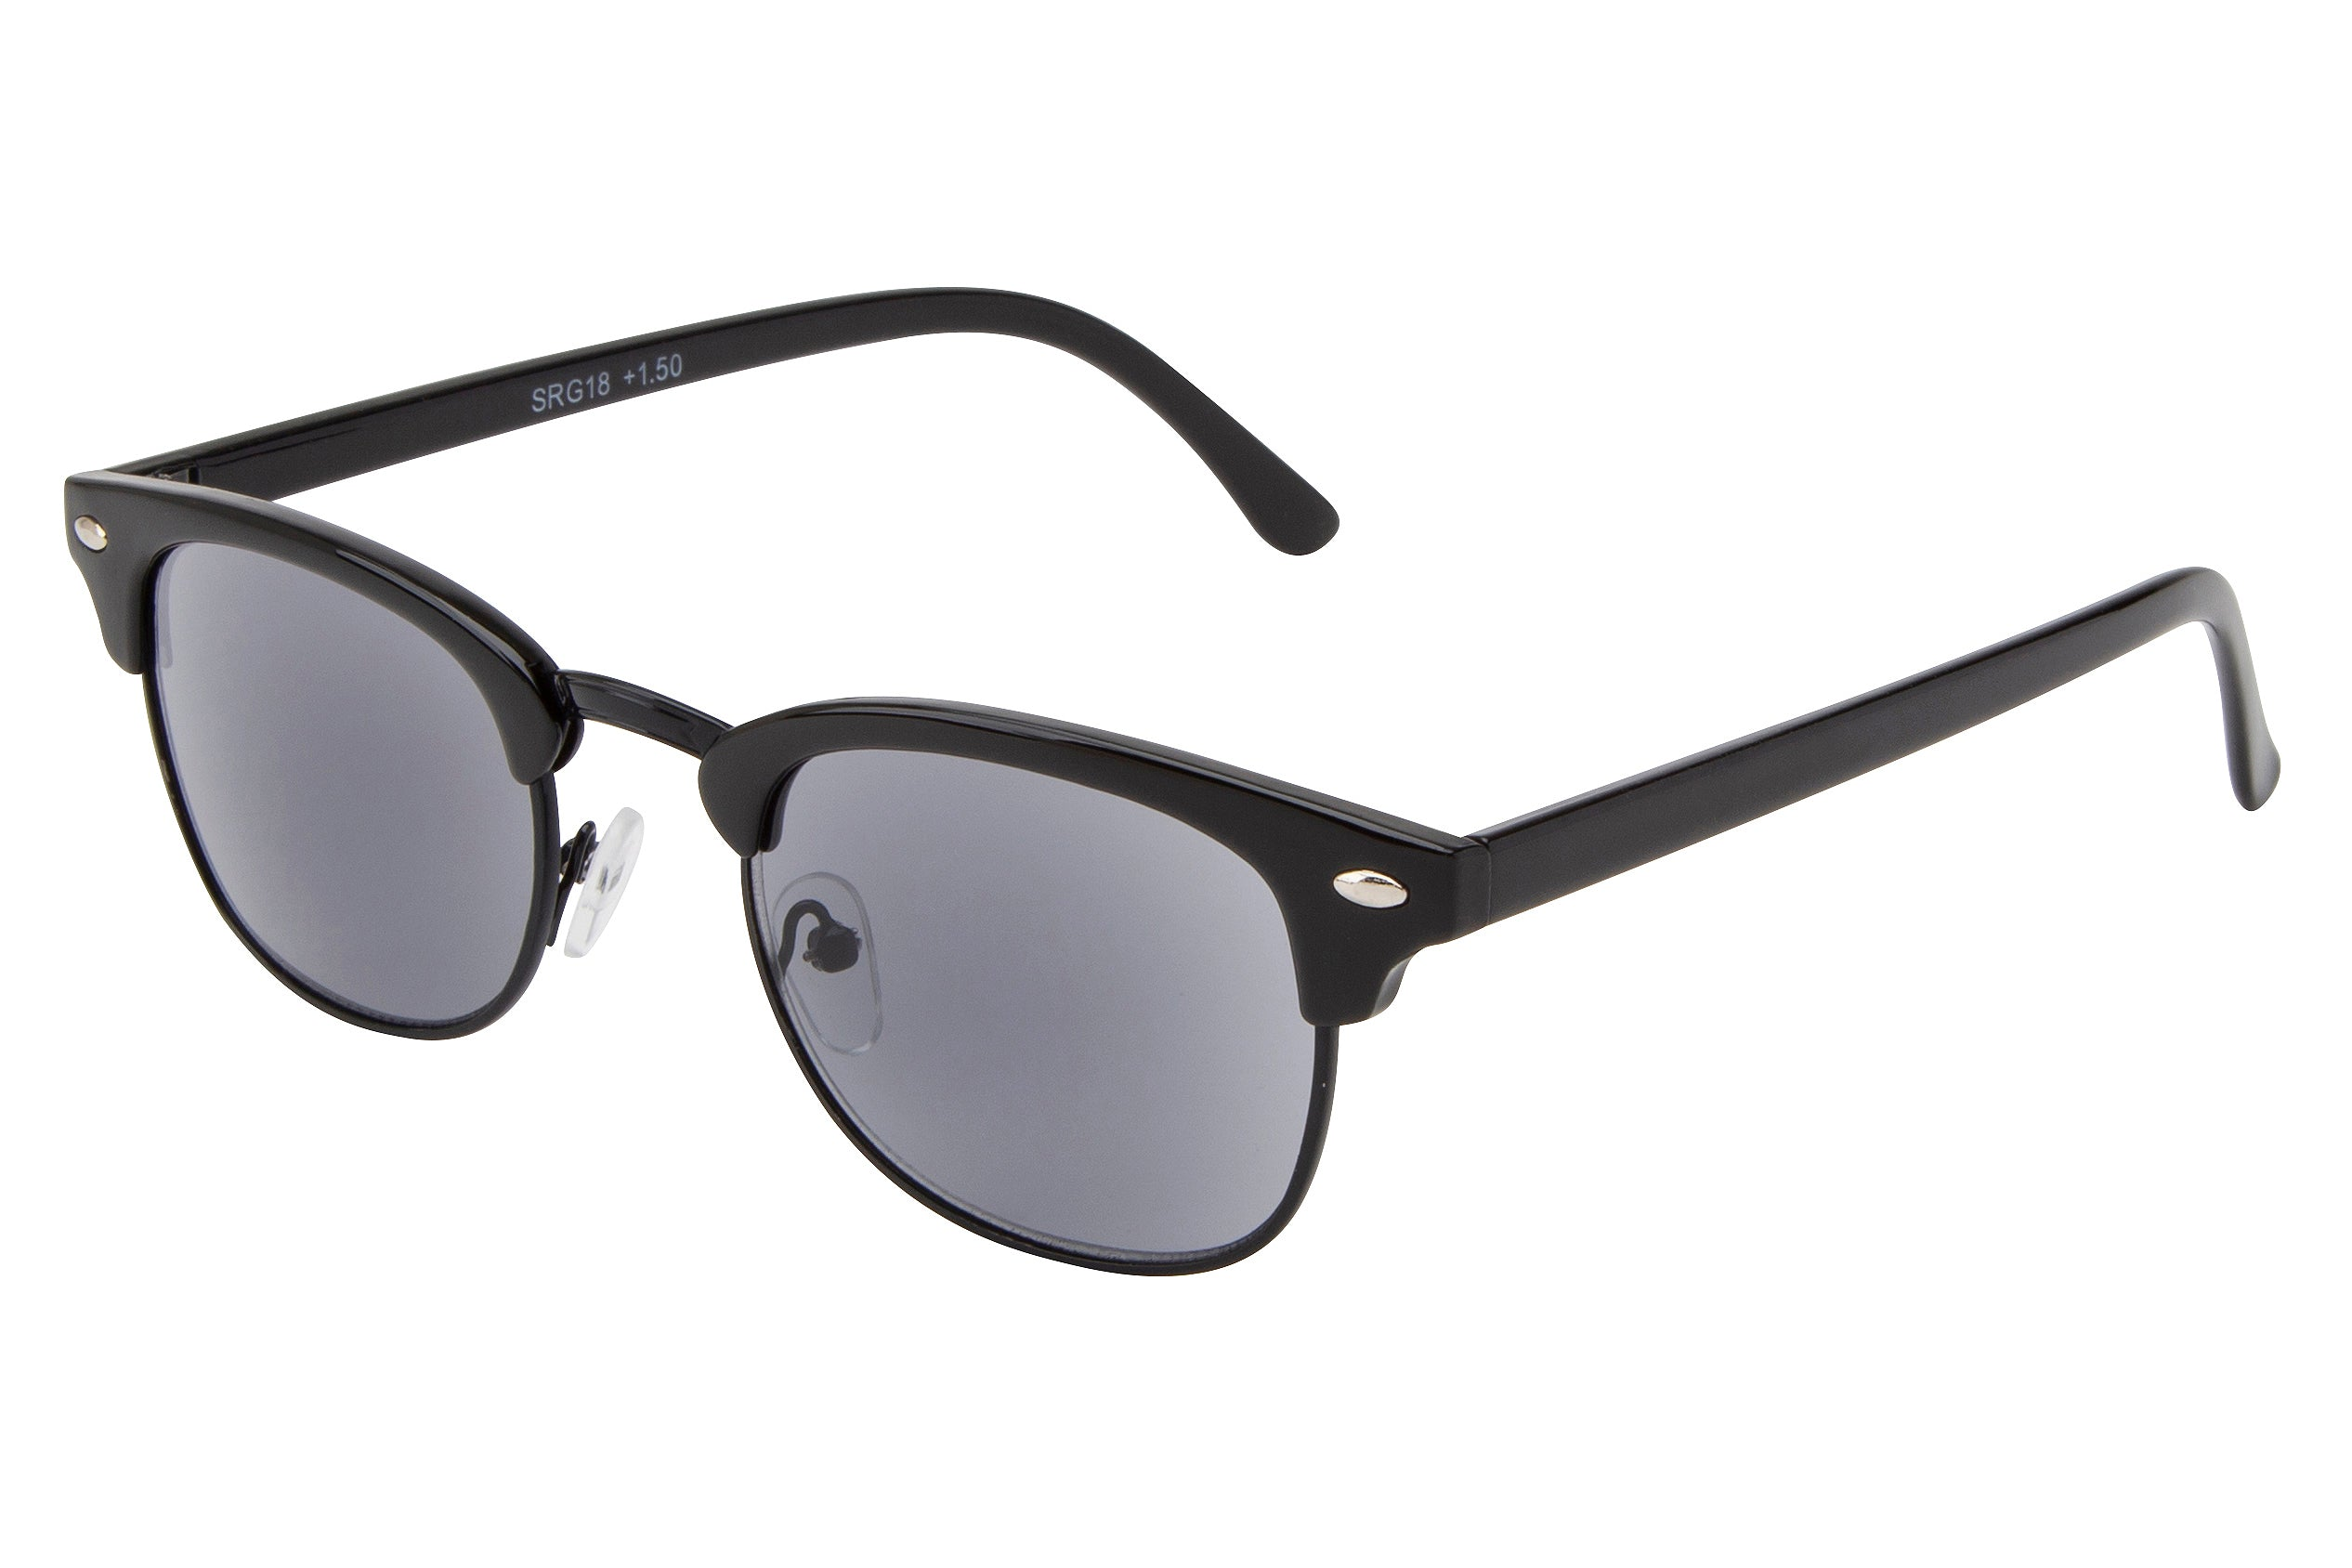 SRG18 - Reading Sunglasses Assorted Powers